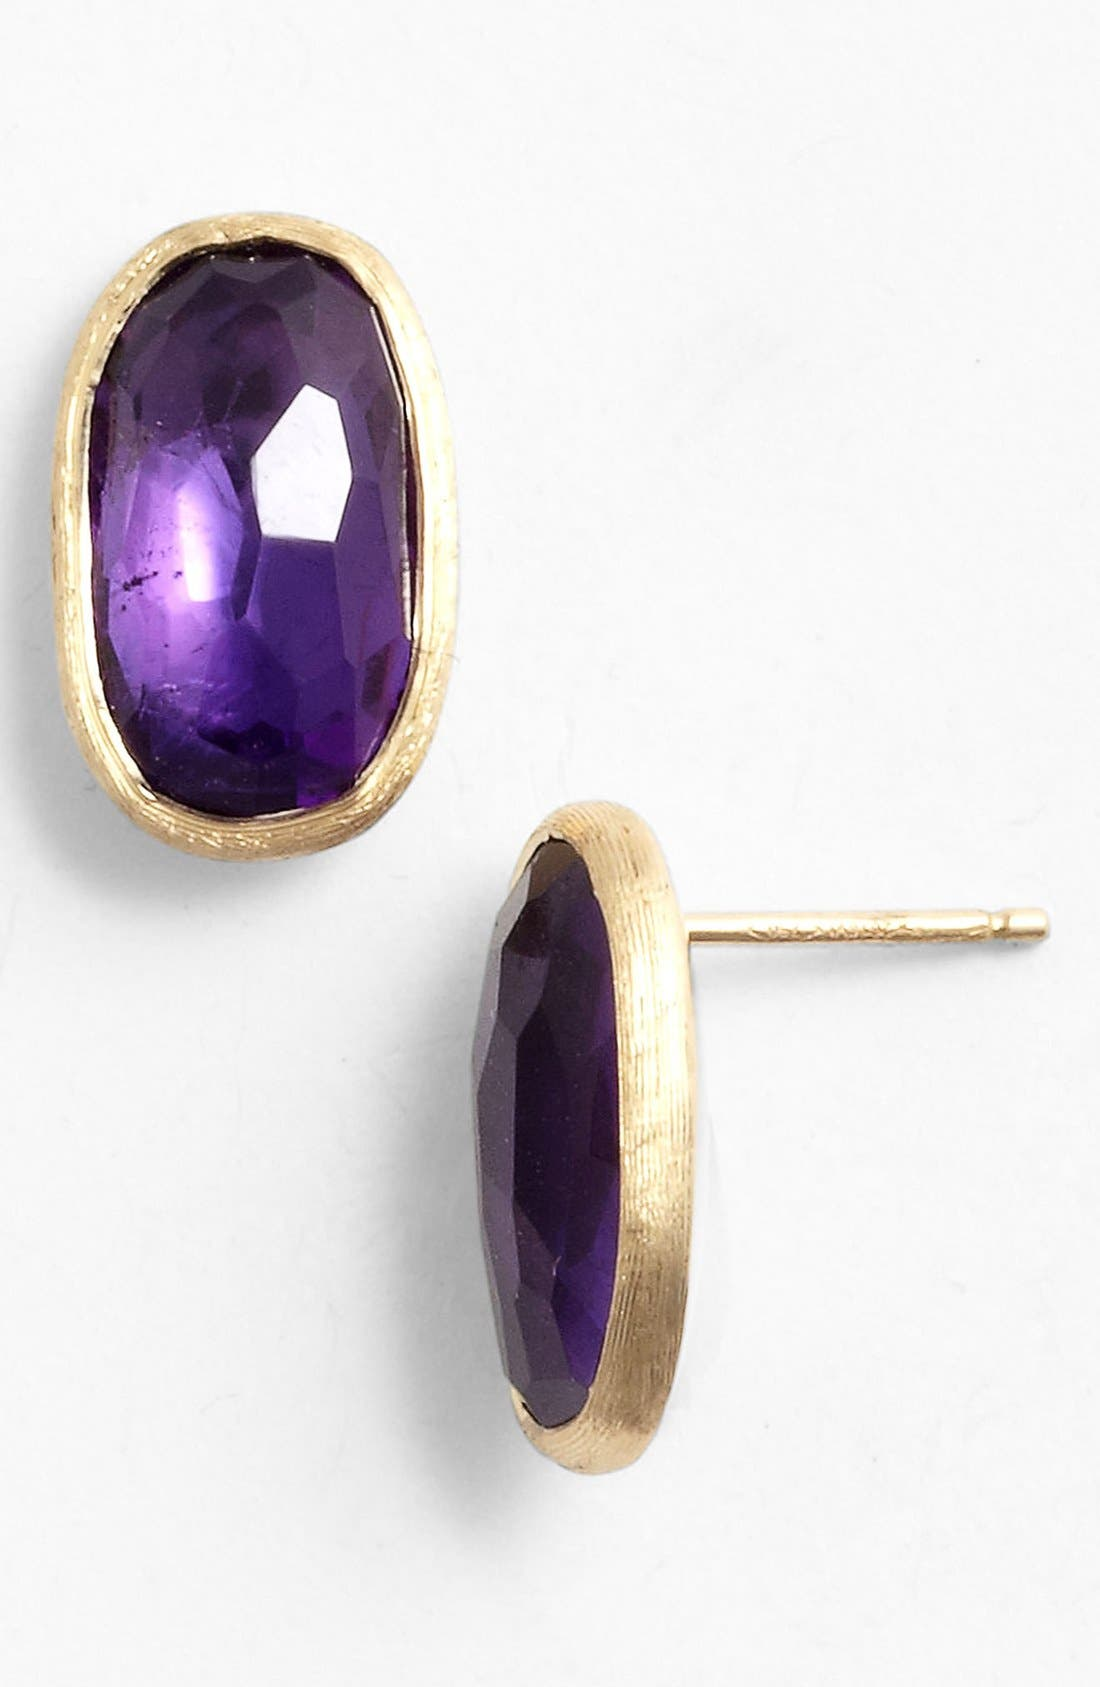 Main Image - Marco Bicego 'Murano' Stud Earrings